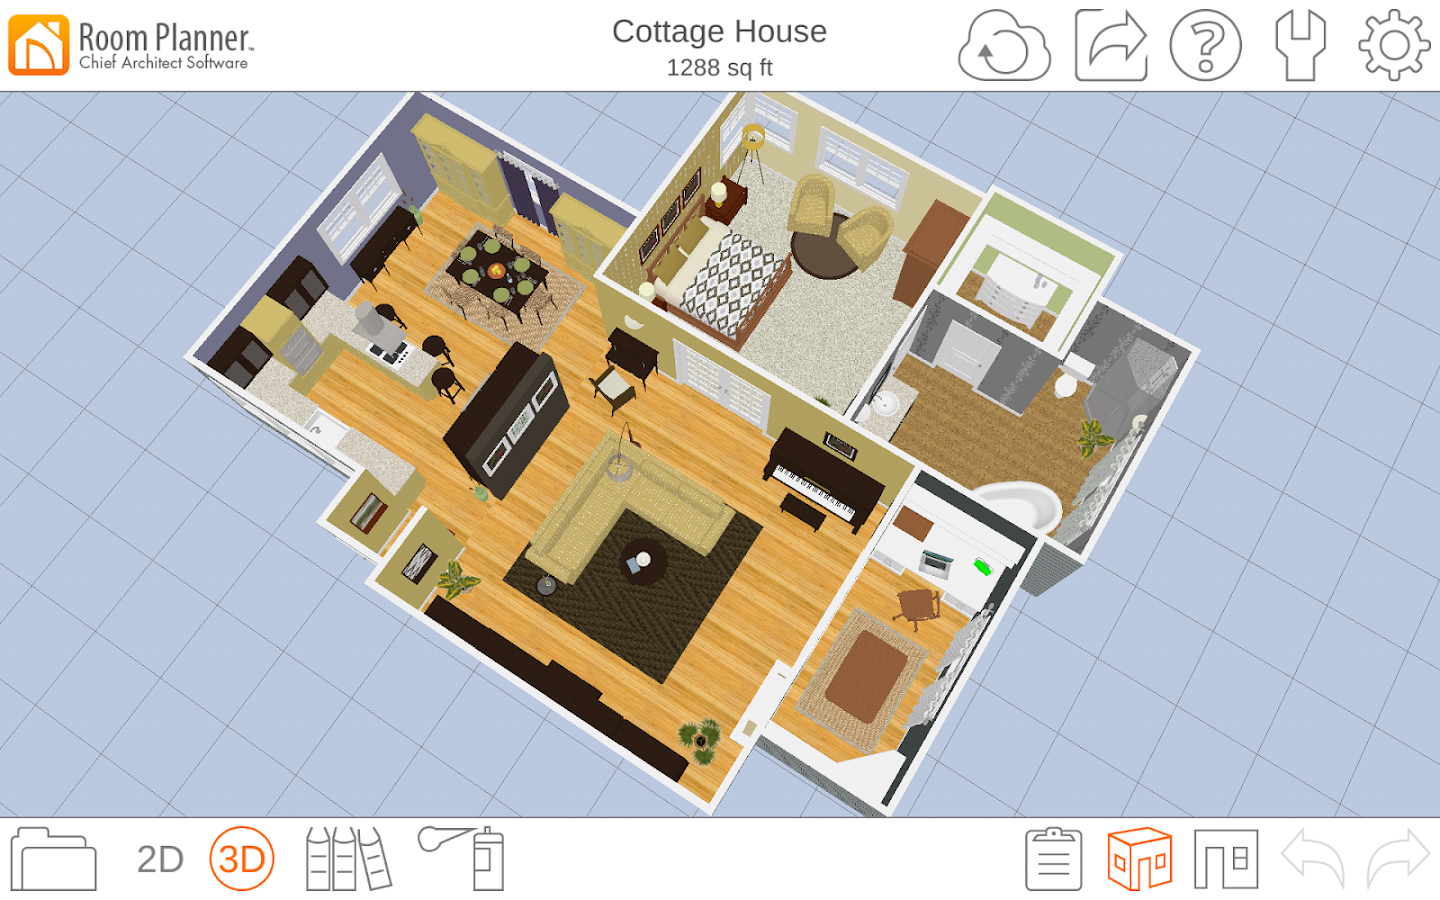 Room planner home design android apps on google play for Software planner